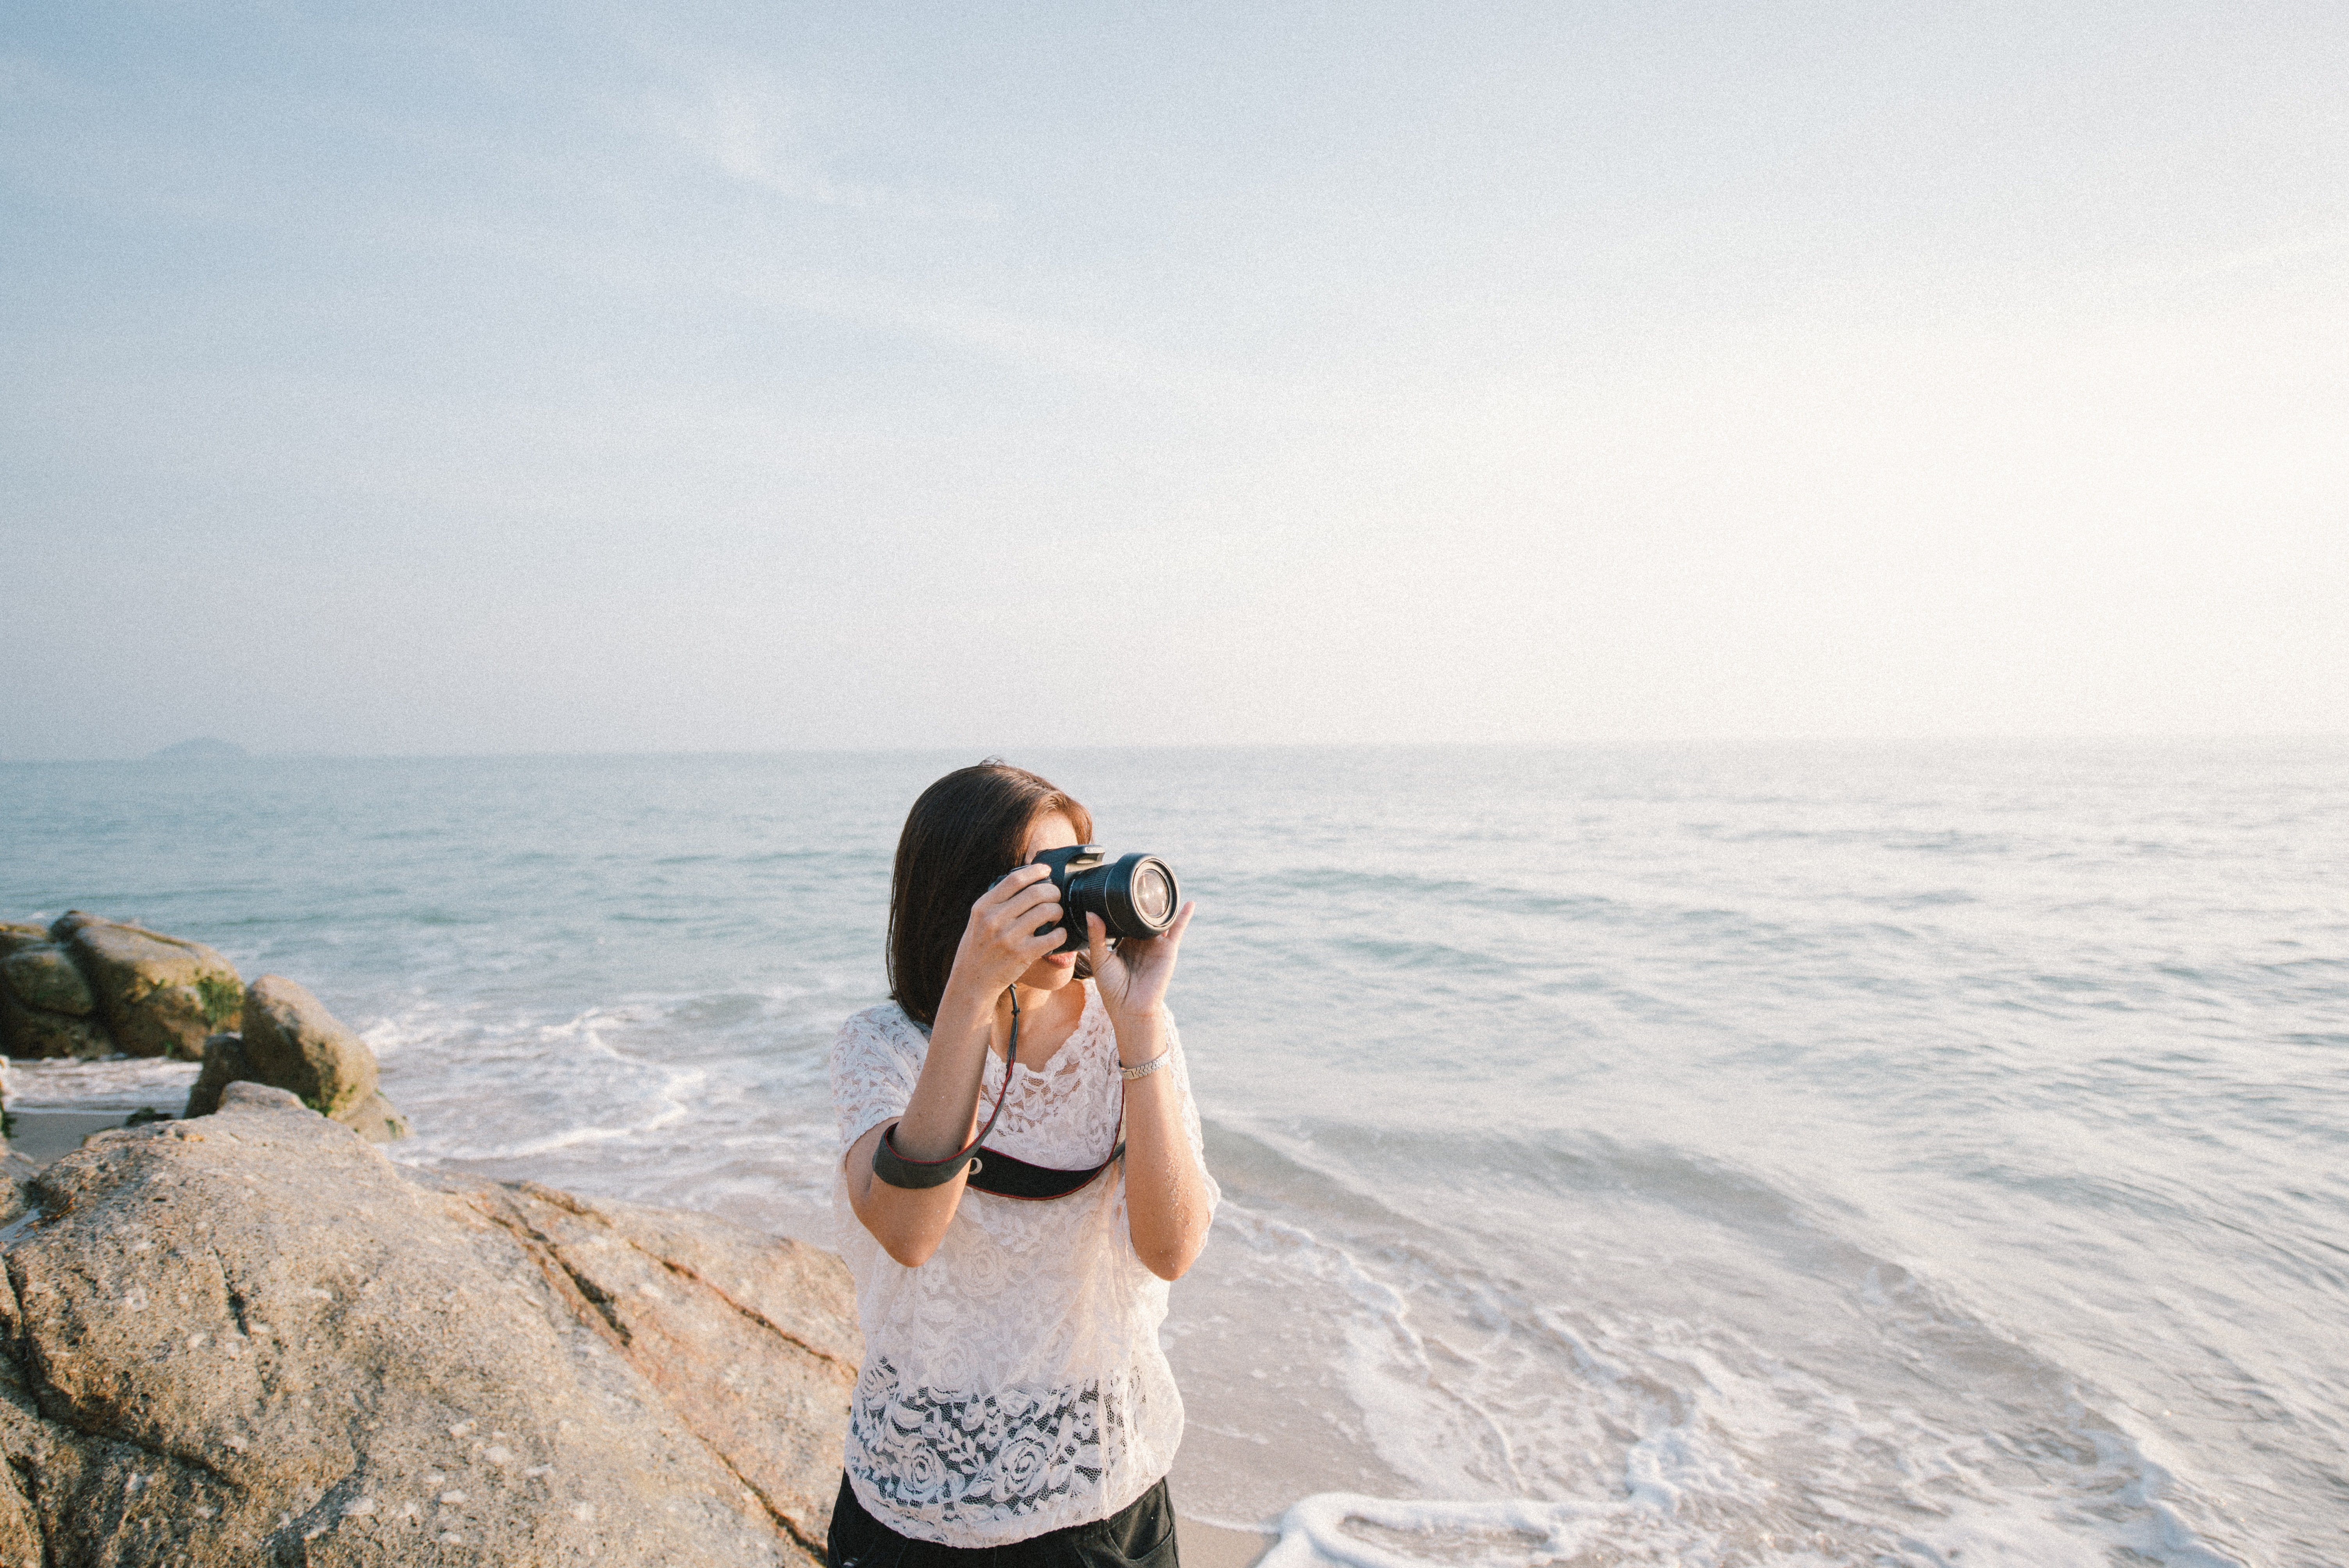 woman taking a photo using a DSLR camera